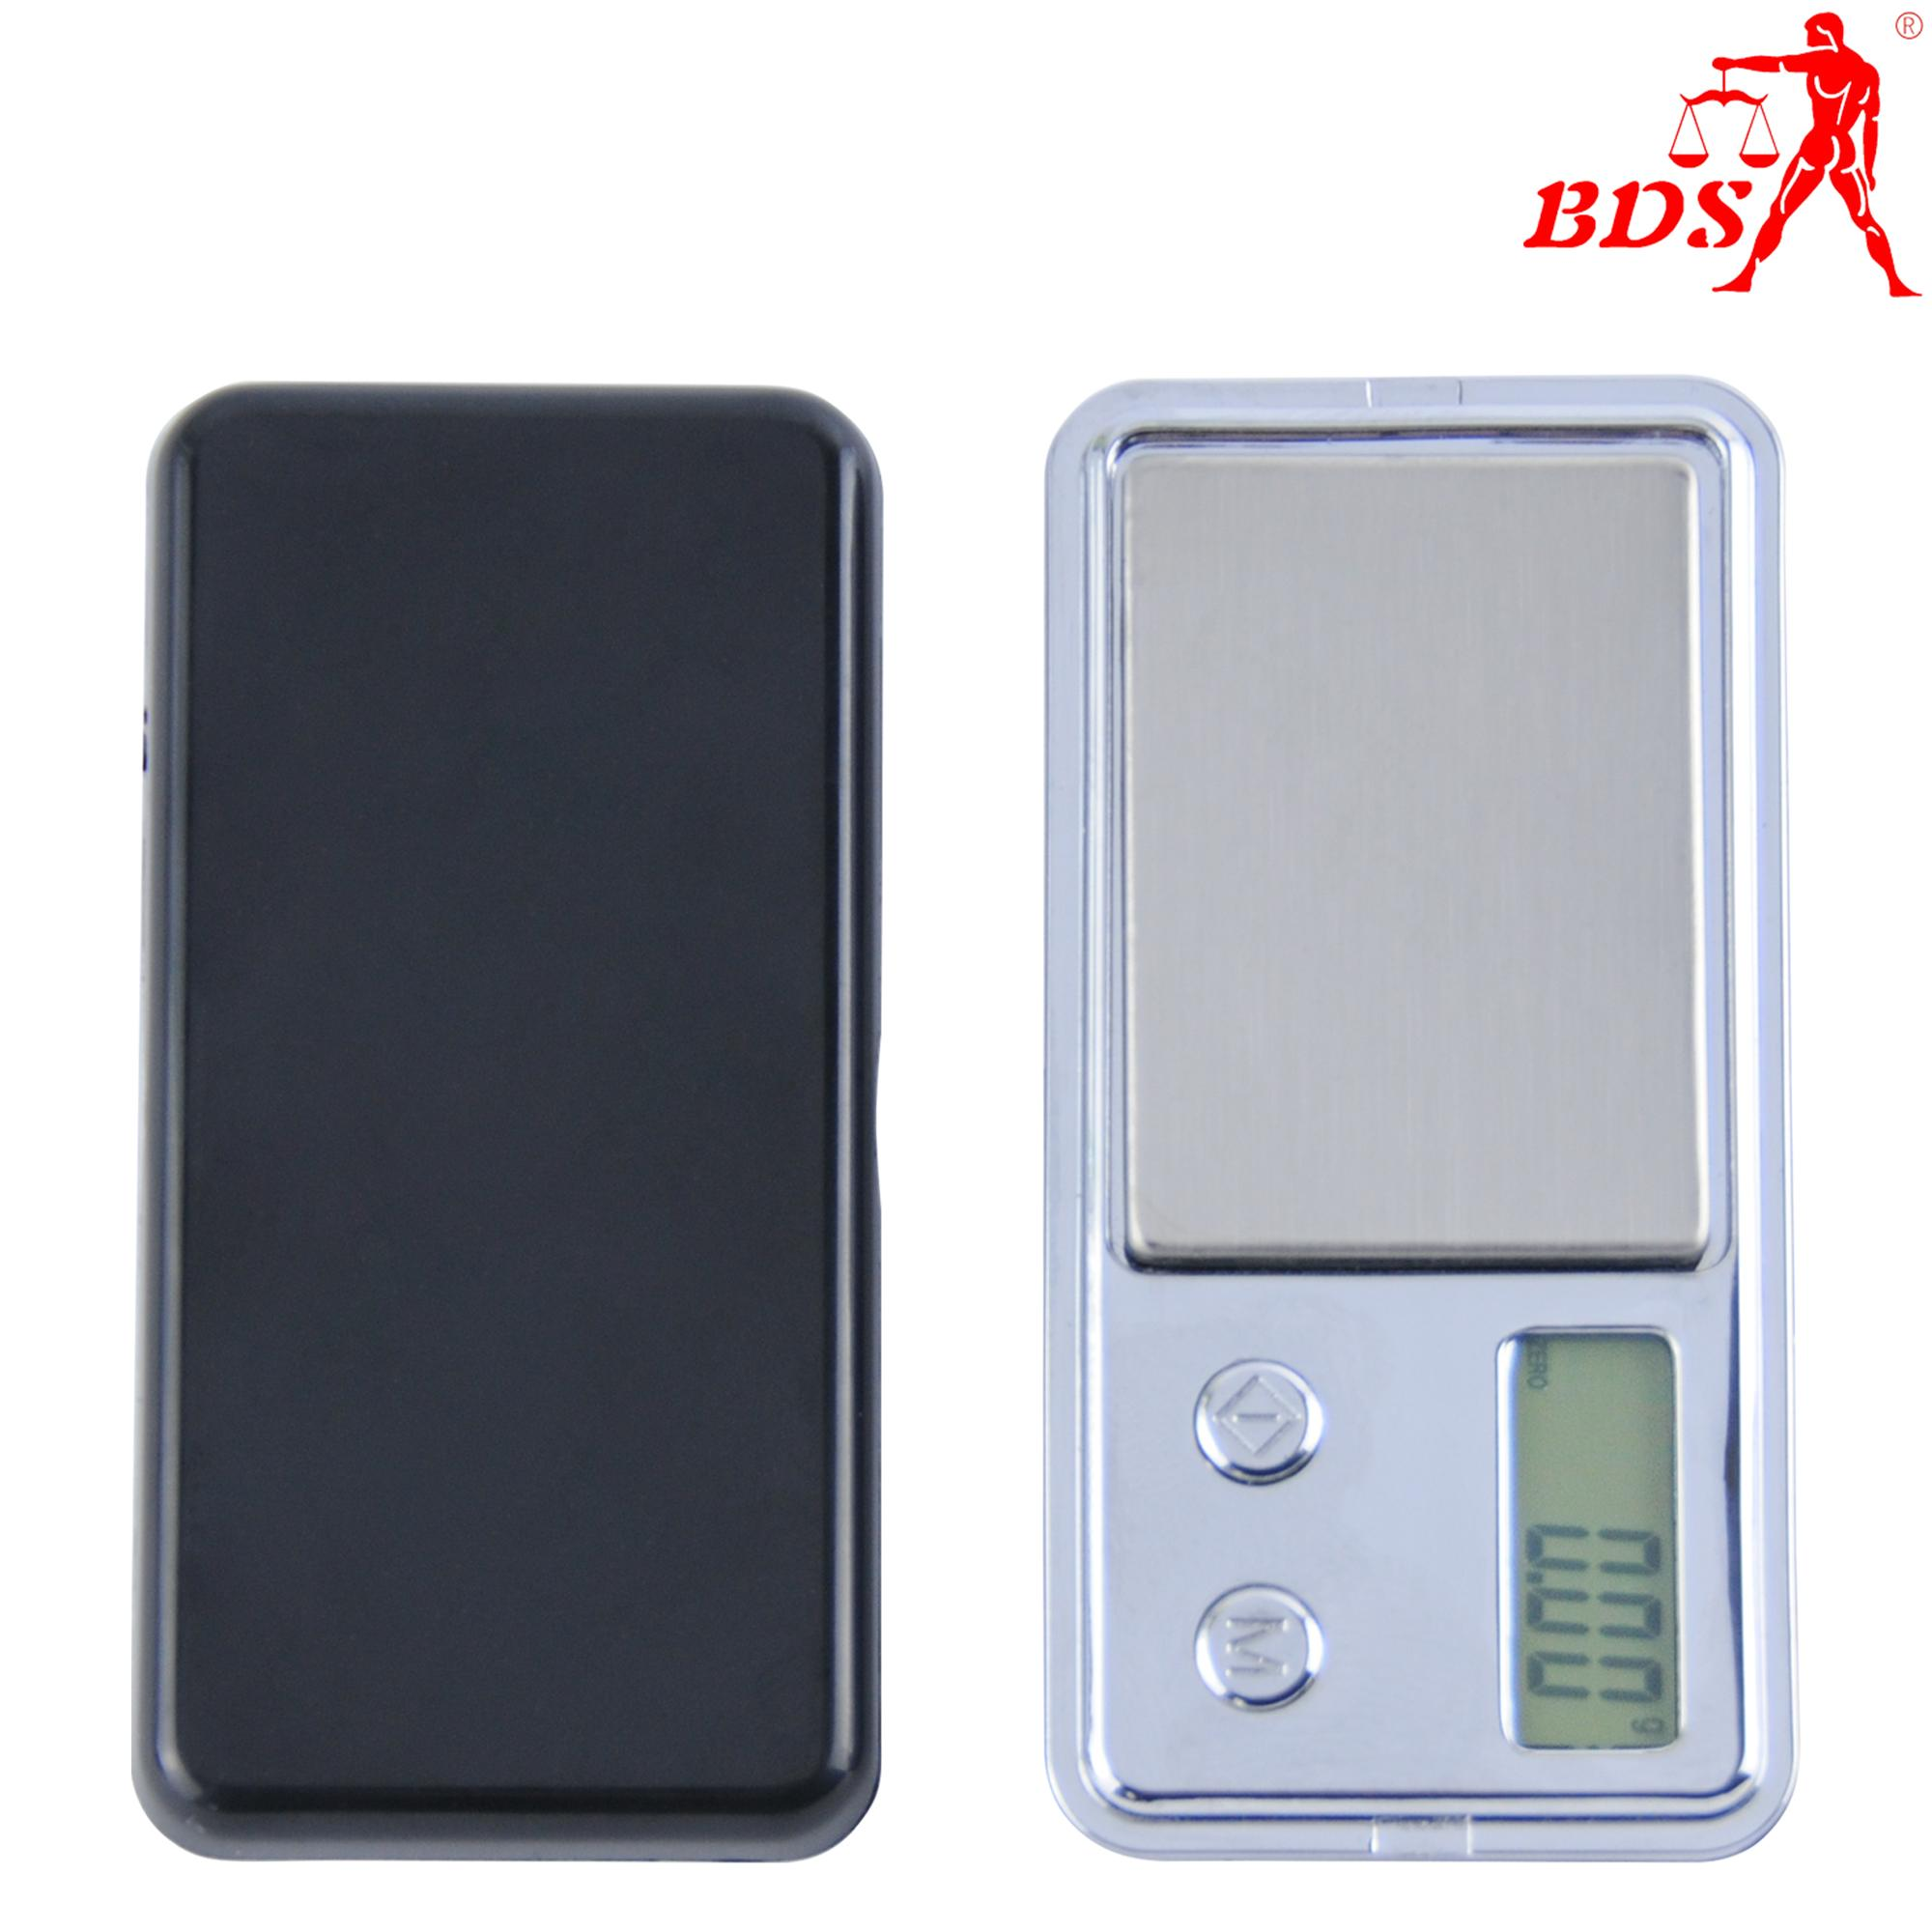 BDS908 precision jewelry weighing scales 0.01g digital pocket scales 1